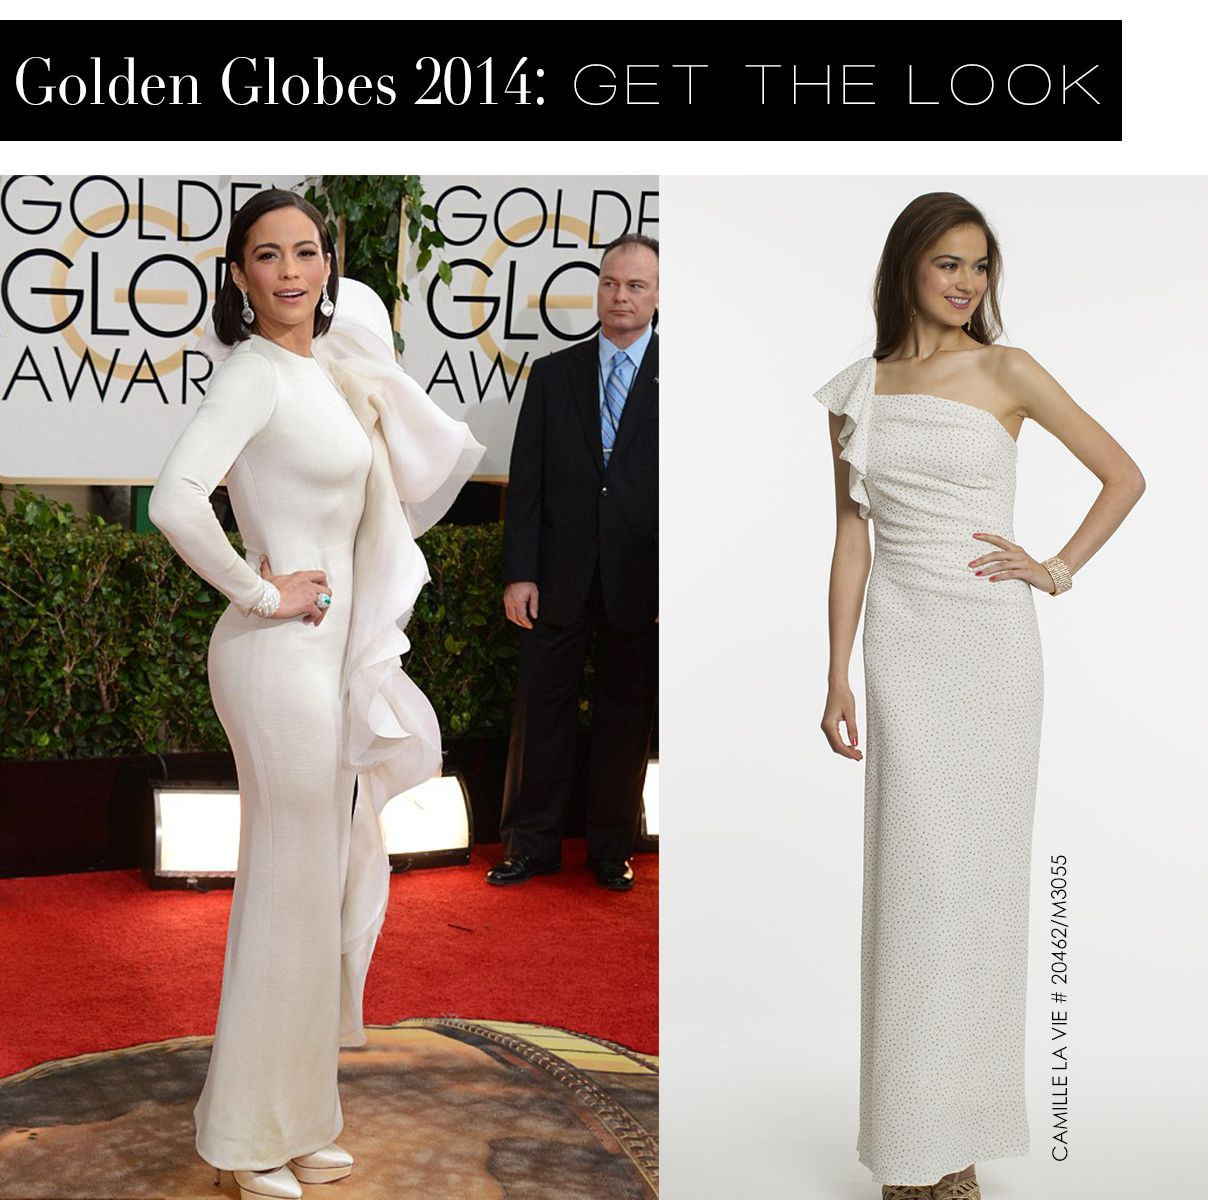 Paula Patton at the Golden Globes 2014 and the Camille La Vie dress version for less